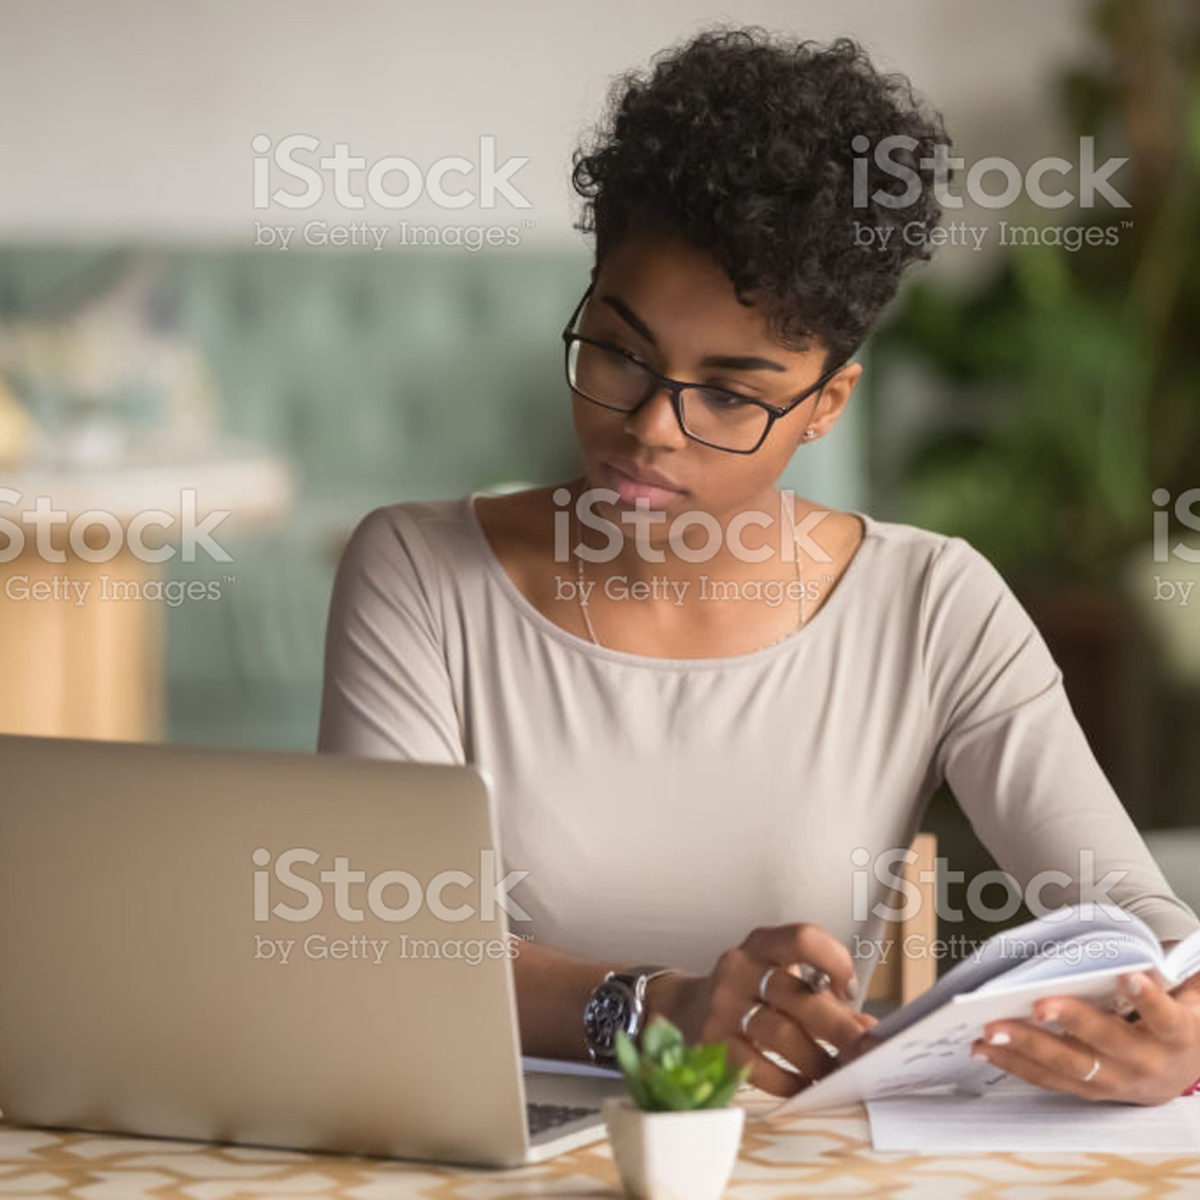 Focused young african american businesswoman or student looking at laptop holding book learning, serious black woman working or studying with computer